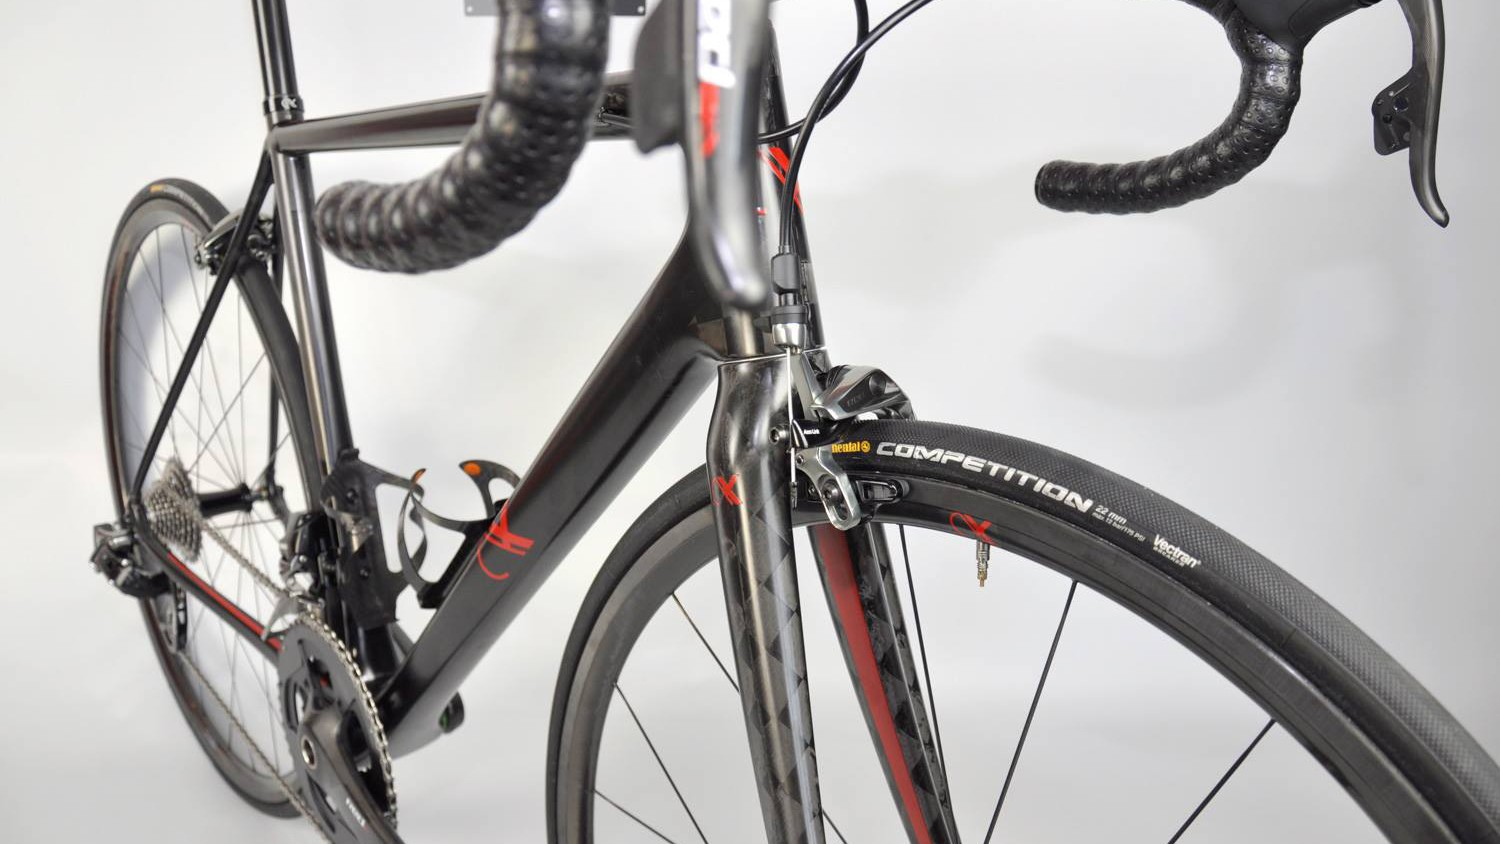 The SRAM Red eTap build uses no gear cable ports or guides